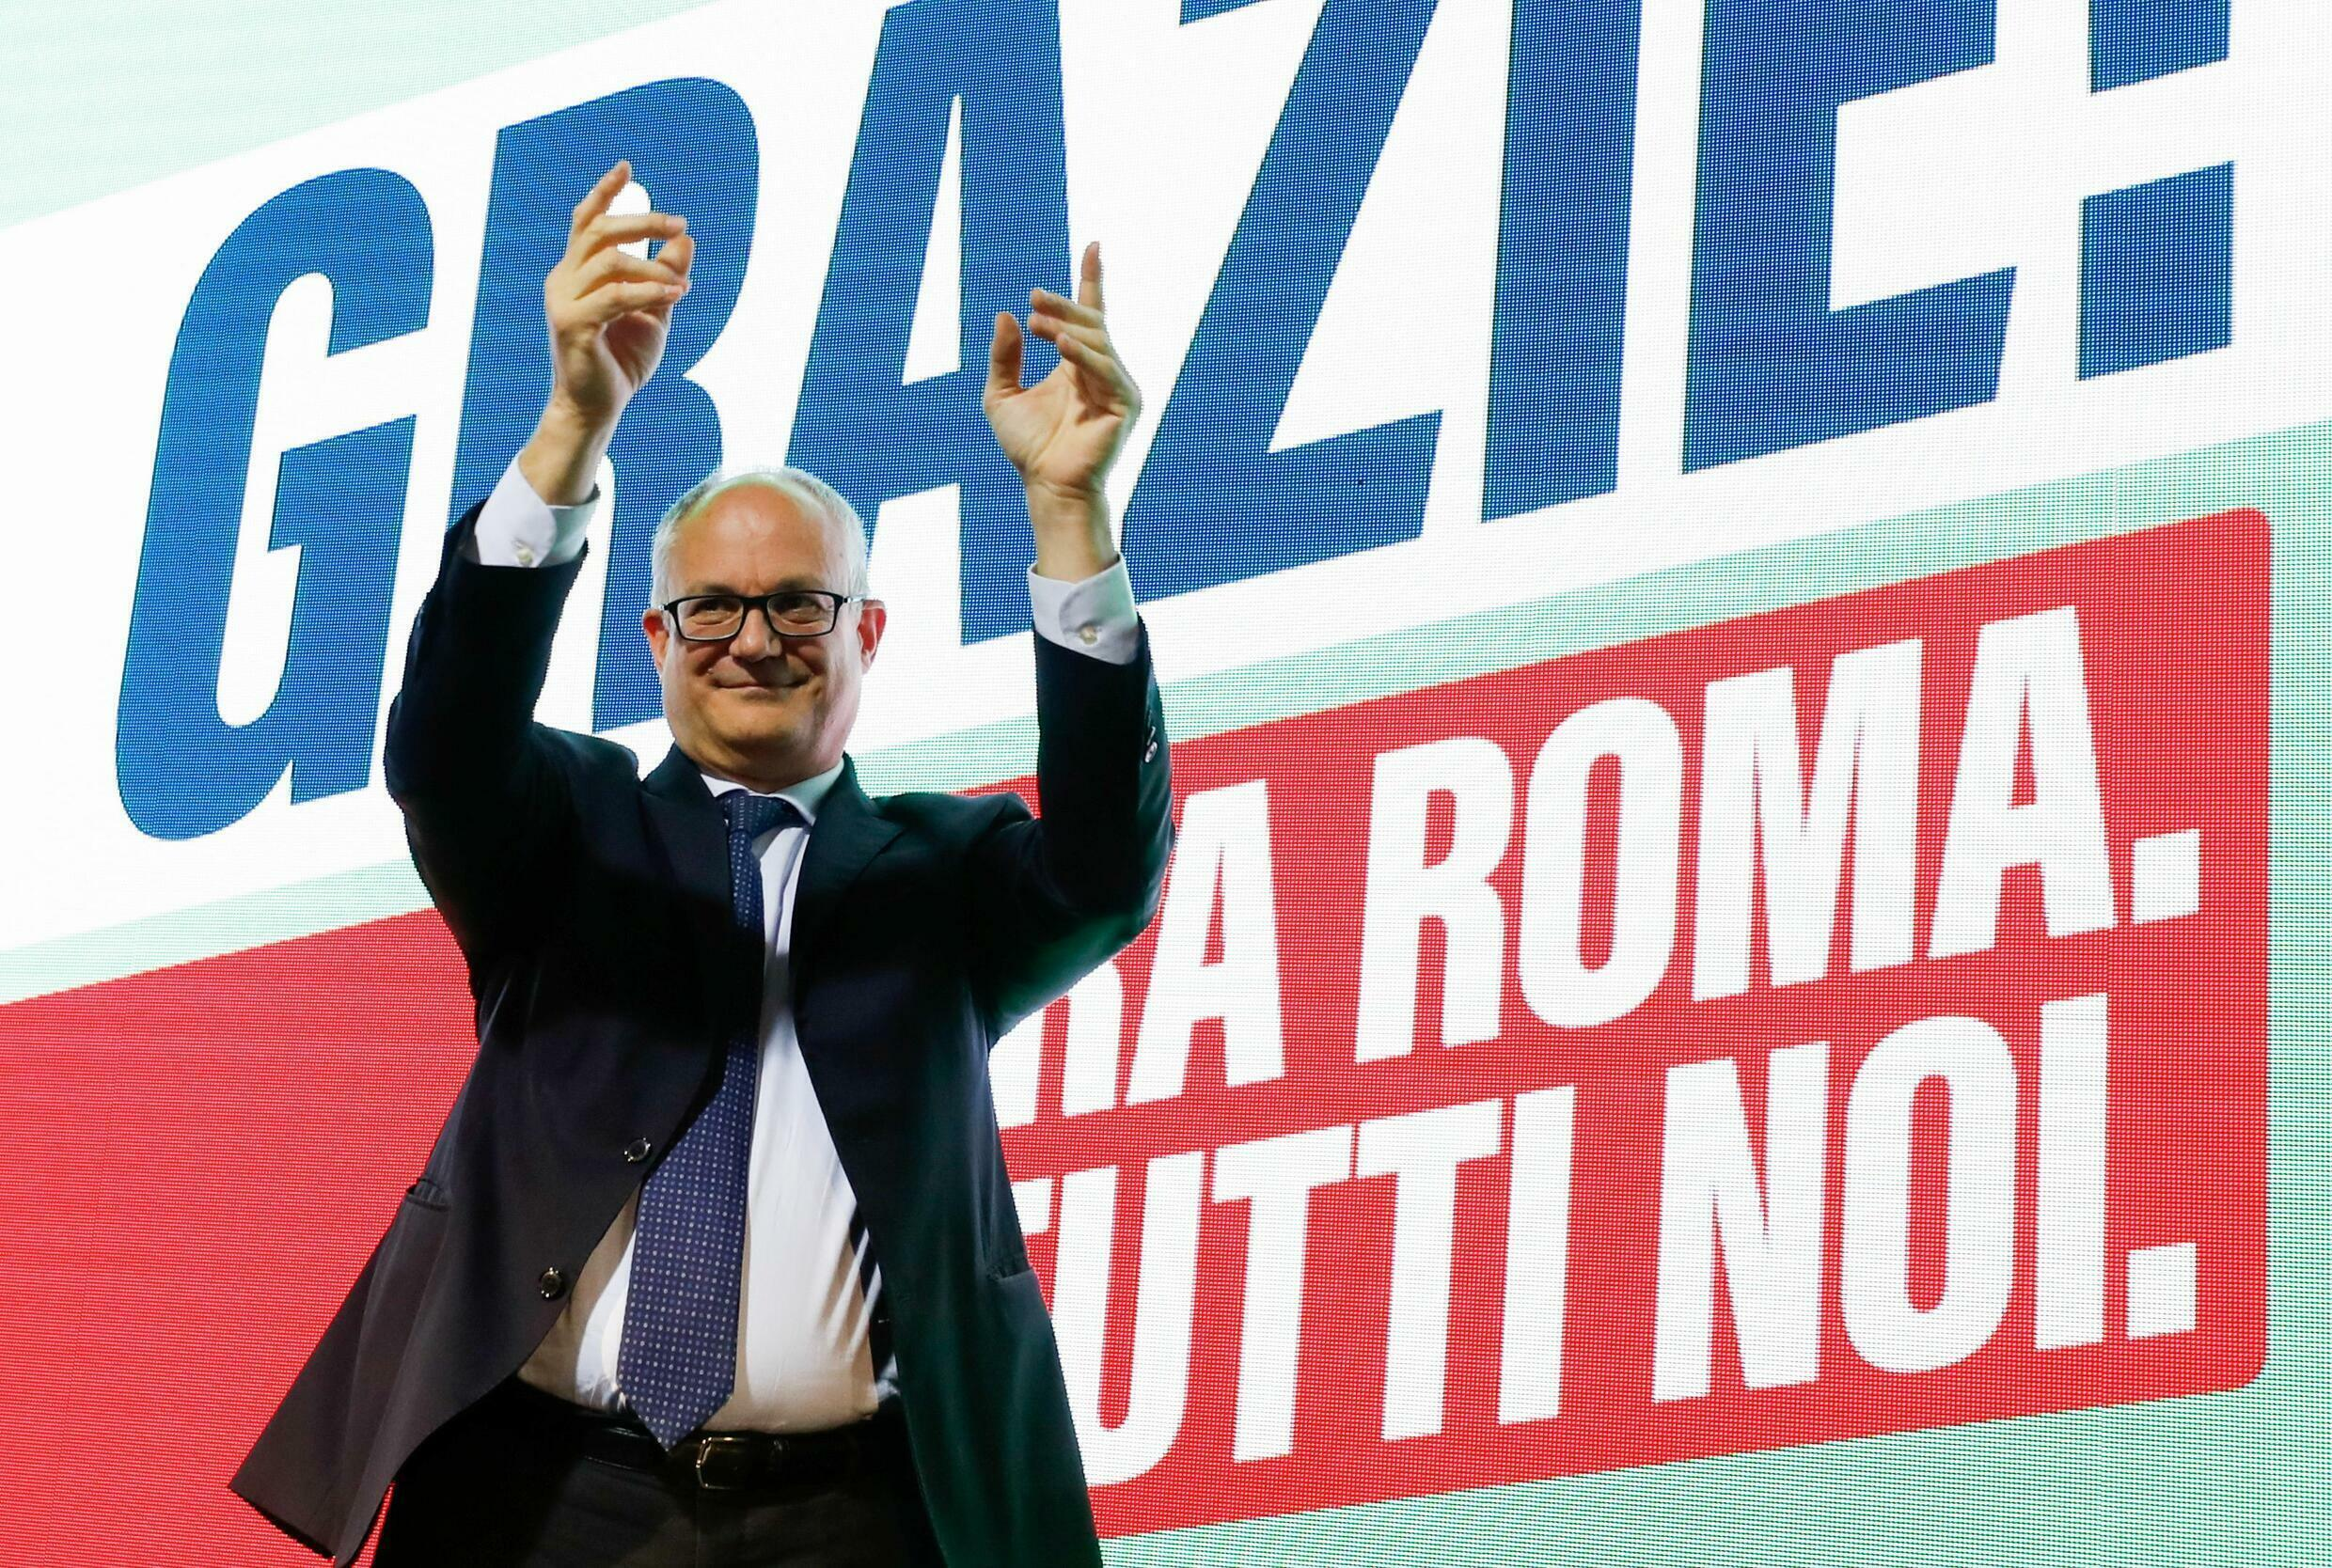 2021-10-18T144857Z_286825185_RC2ECQ9WRUWH_RTRMADP_3_ITALY-POLITICS-ELECTIONS